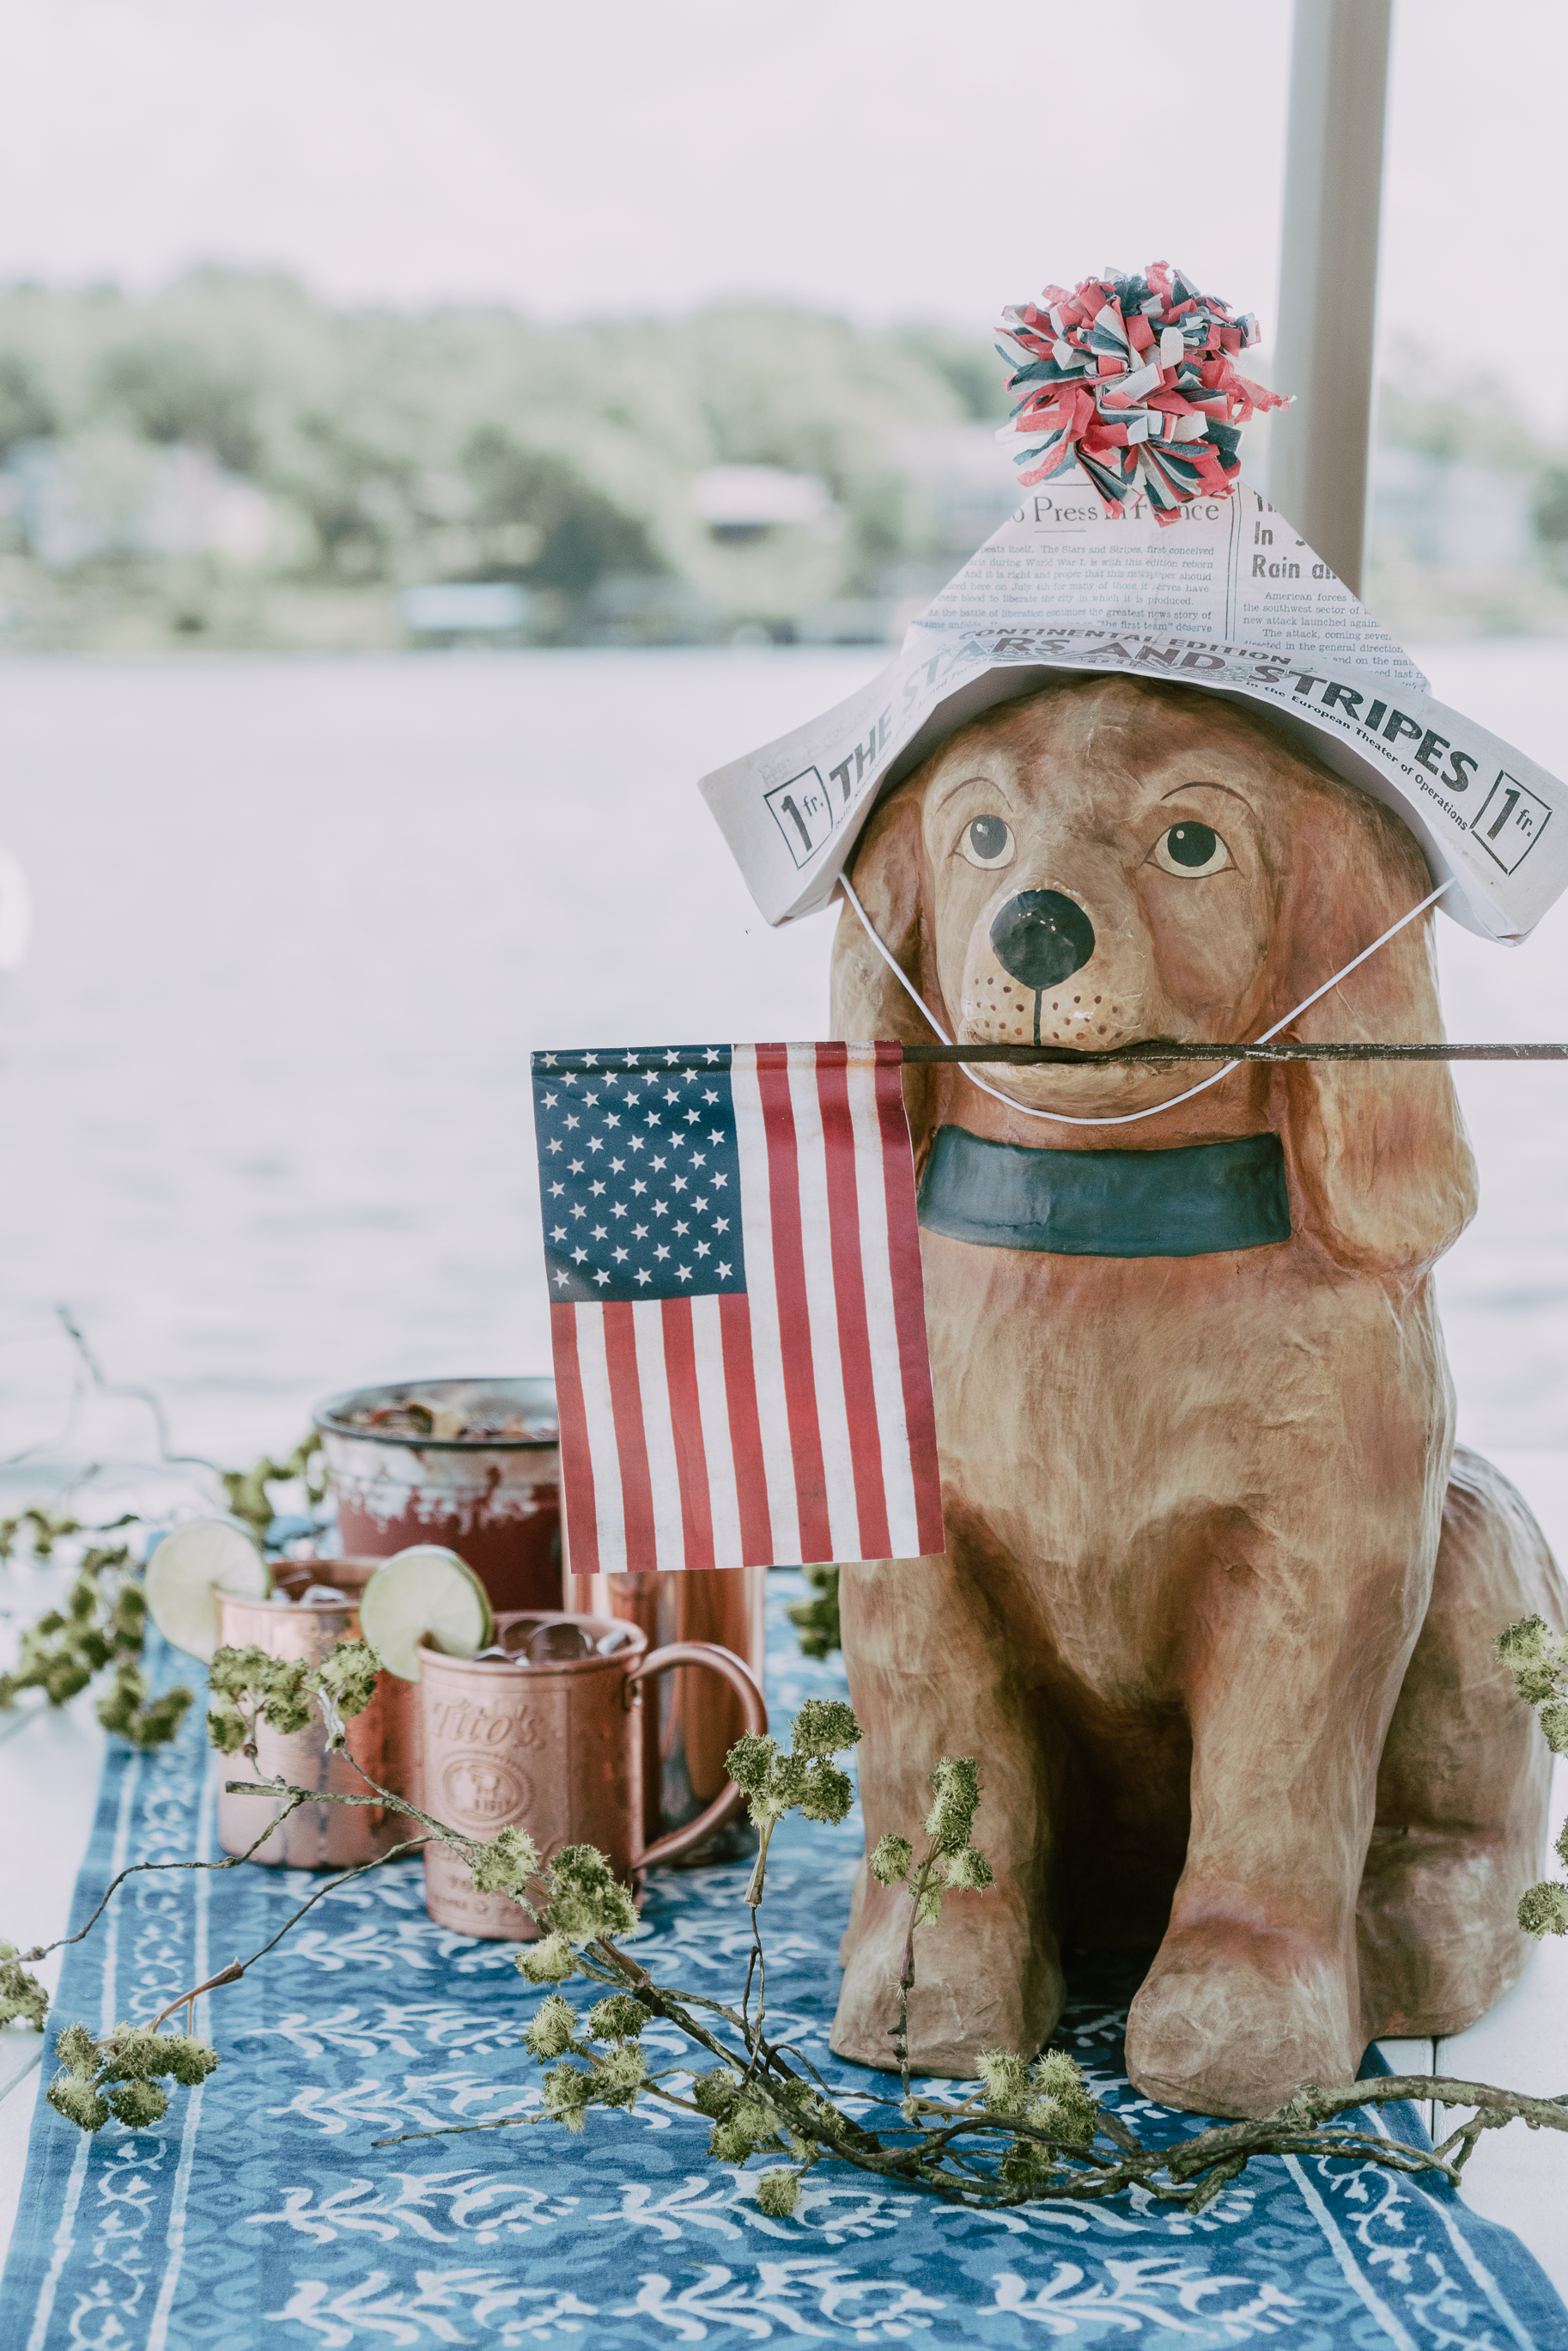 This Americana puppy is ushering in the 4th of July with a couple of Moscow Mules, my favorite summer refresher drink.